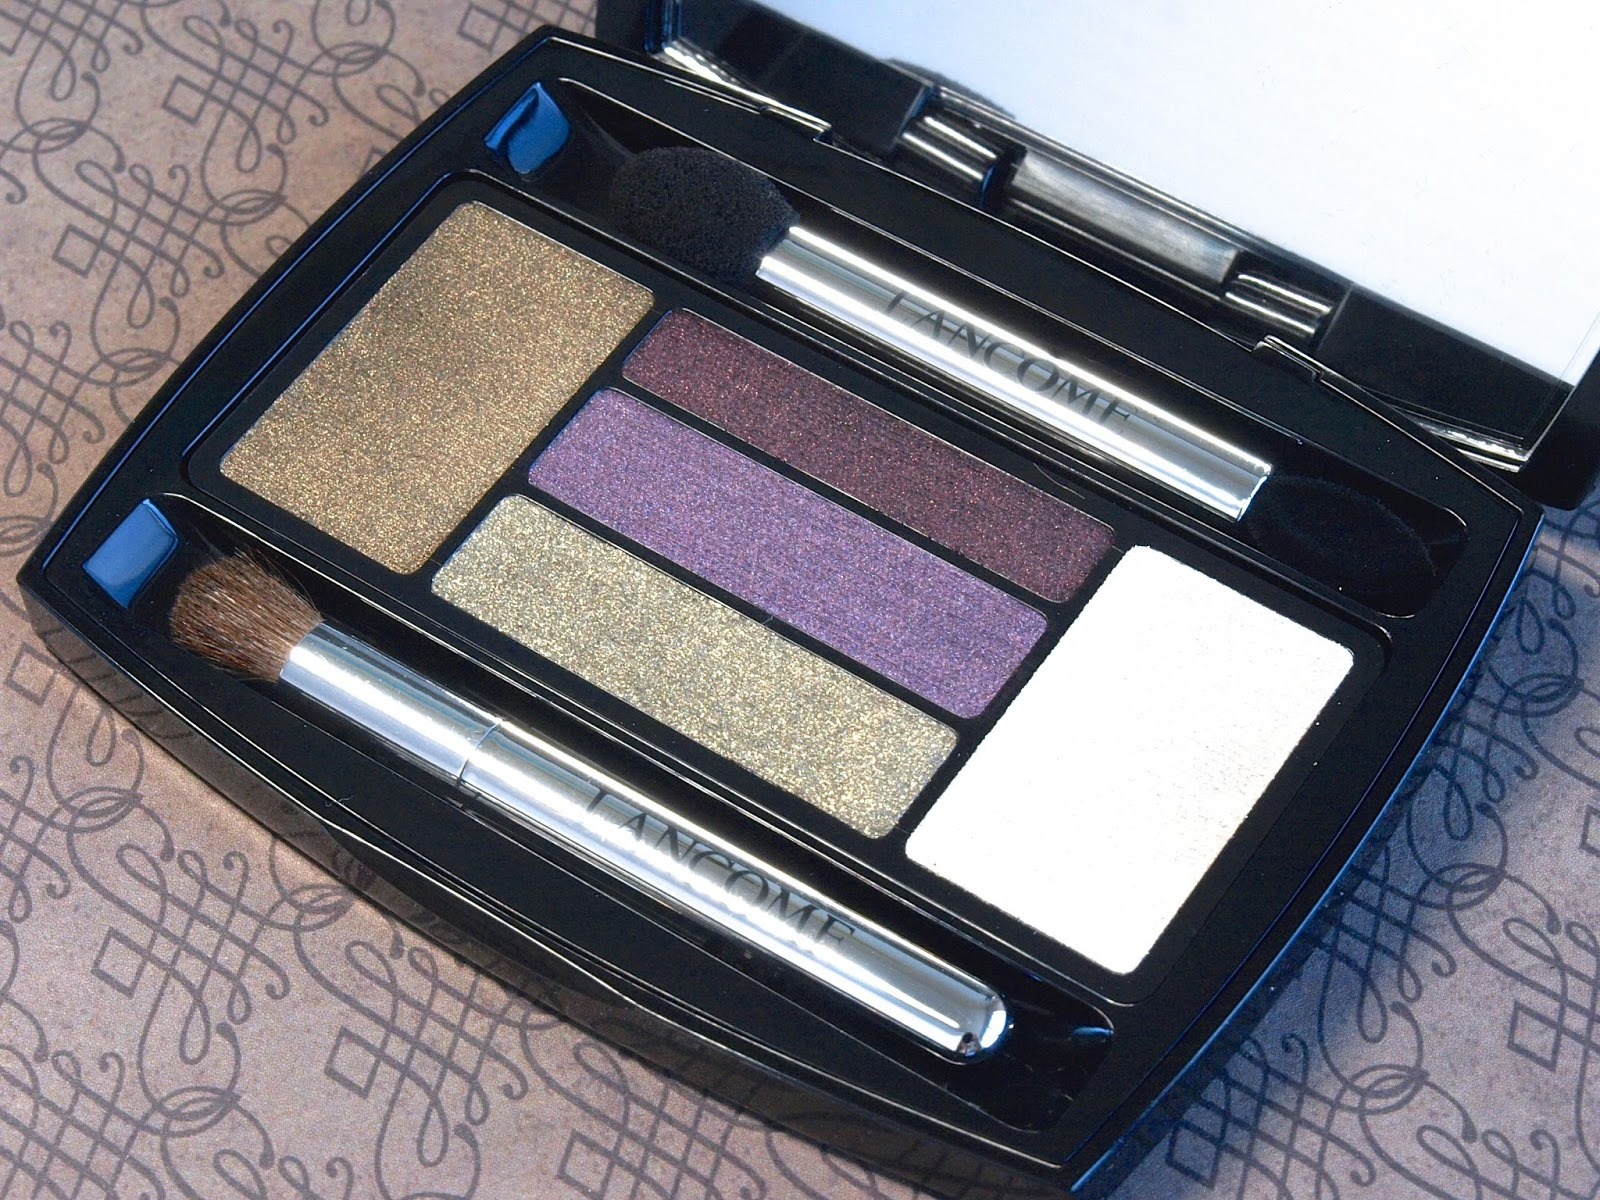 484a4ae53af lancome french idole fall 2014 eyeshadow palette malachite amethyste review  swatches